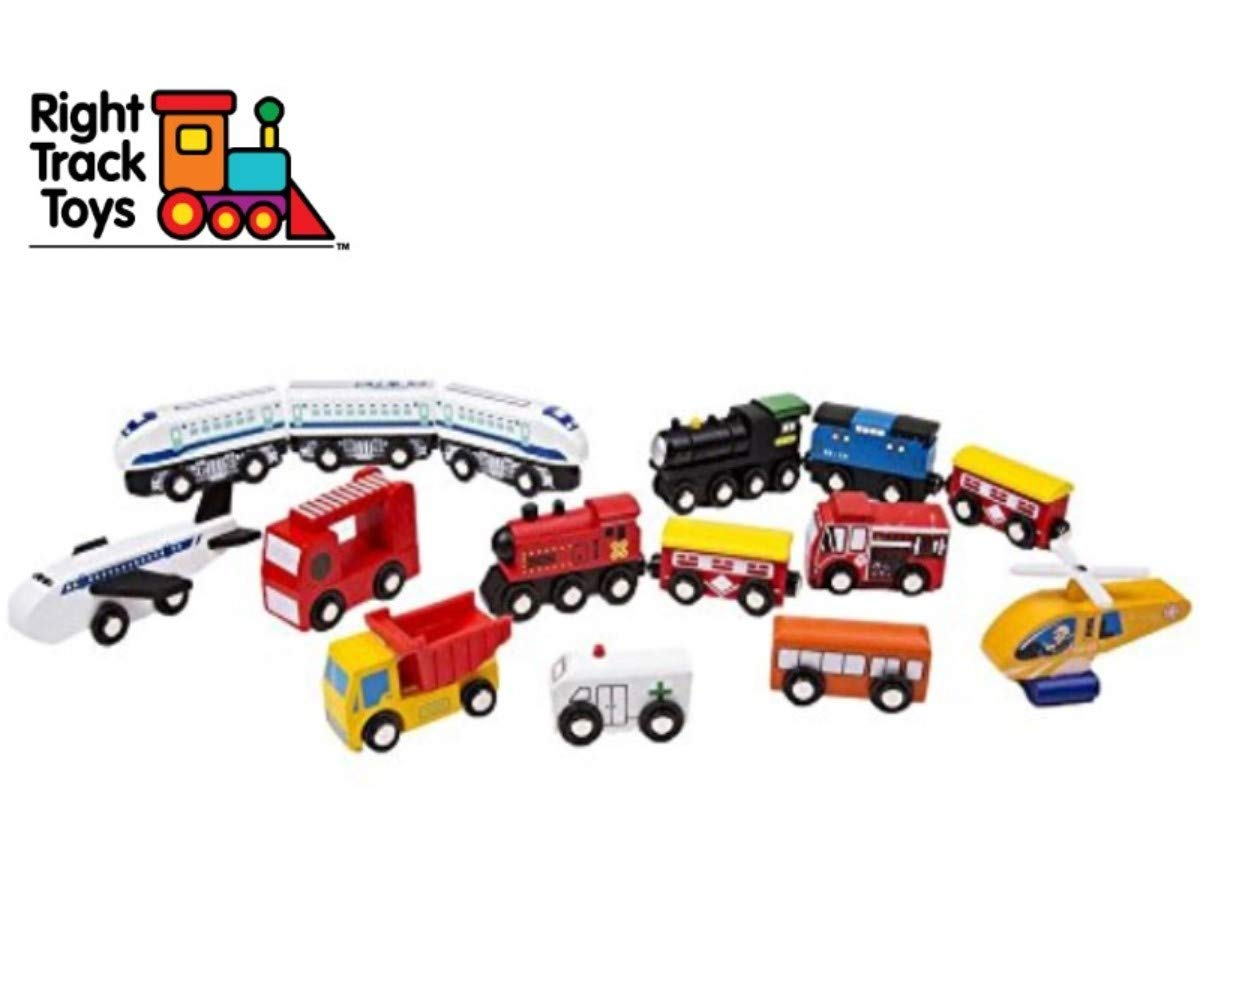 Wooden Train Car Set - 15 Unique Magnetic Vehicles And Engines - Add Variety To Your Set With Ambulance, Helicopter, Dump Truck and More - Compatible With Thomas, BRIO, All Major Brands by Right Track Toys